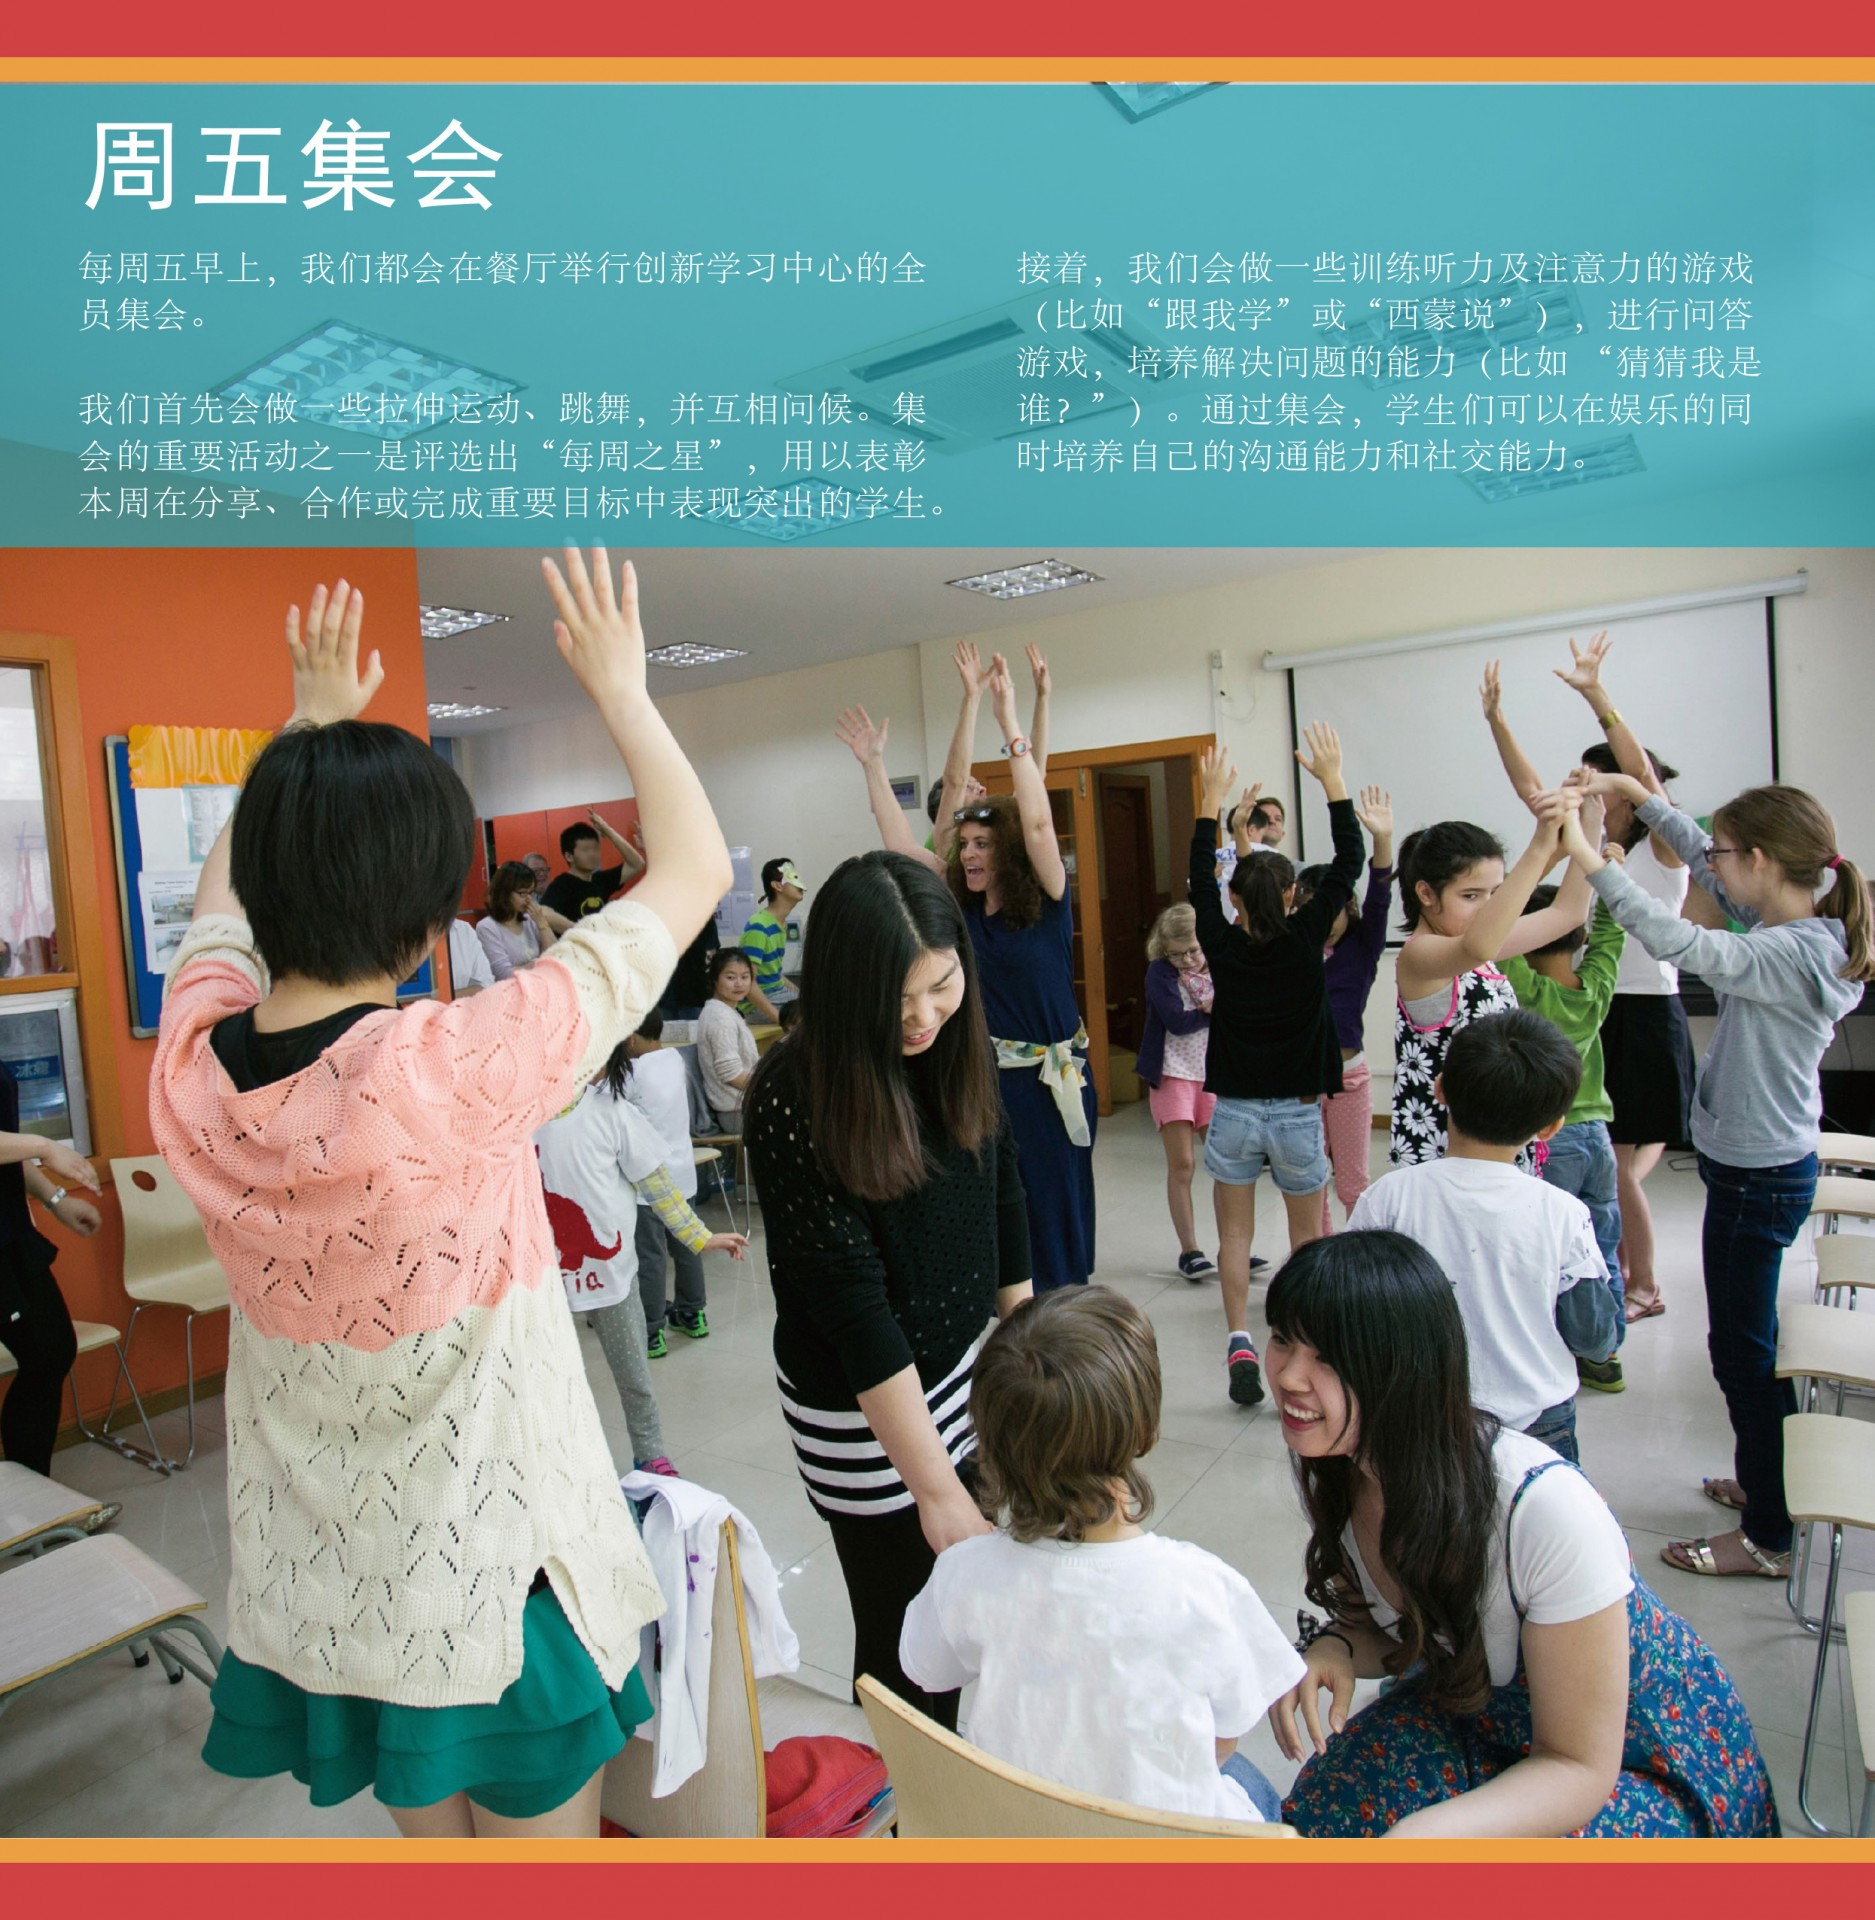 _ILC-Brochure-Chinese-10_01